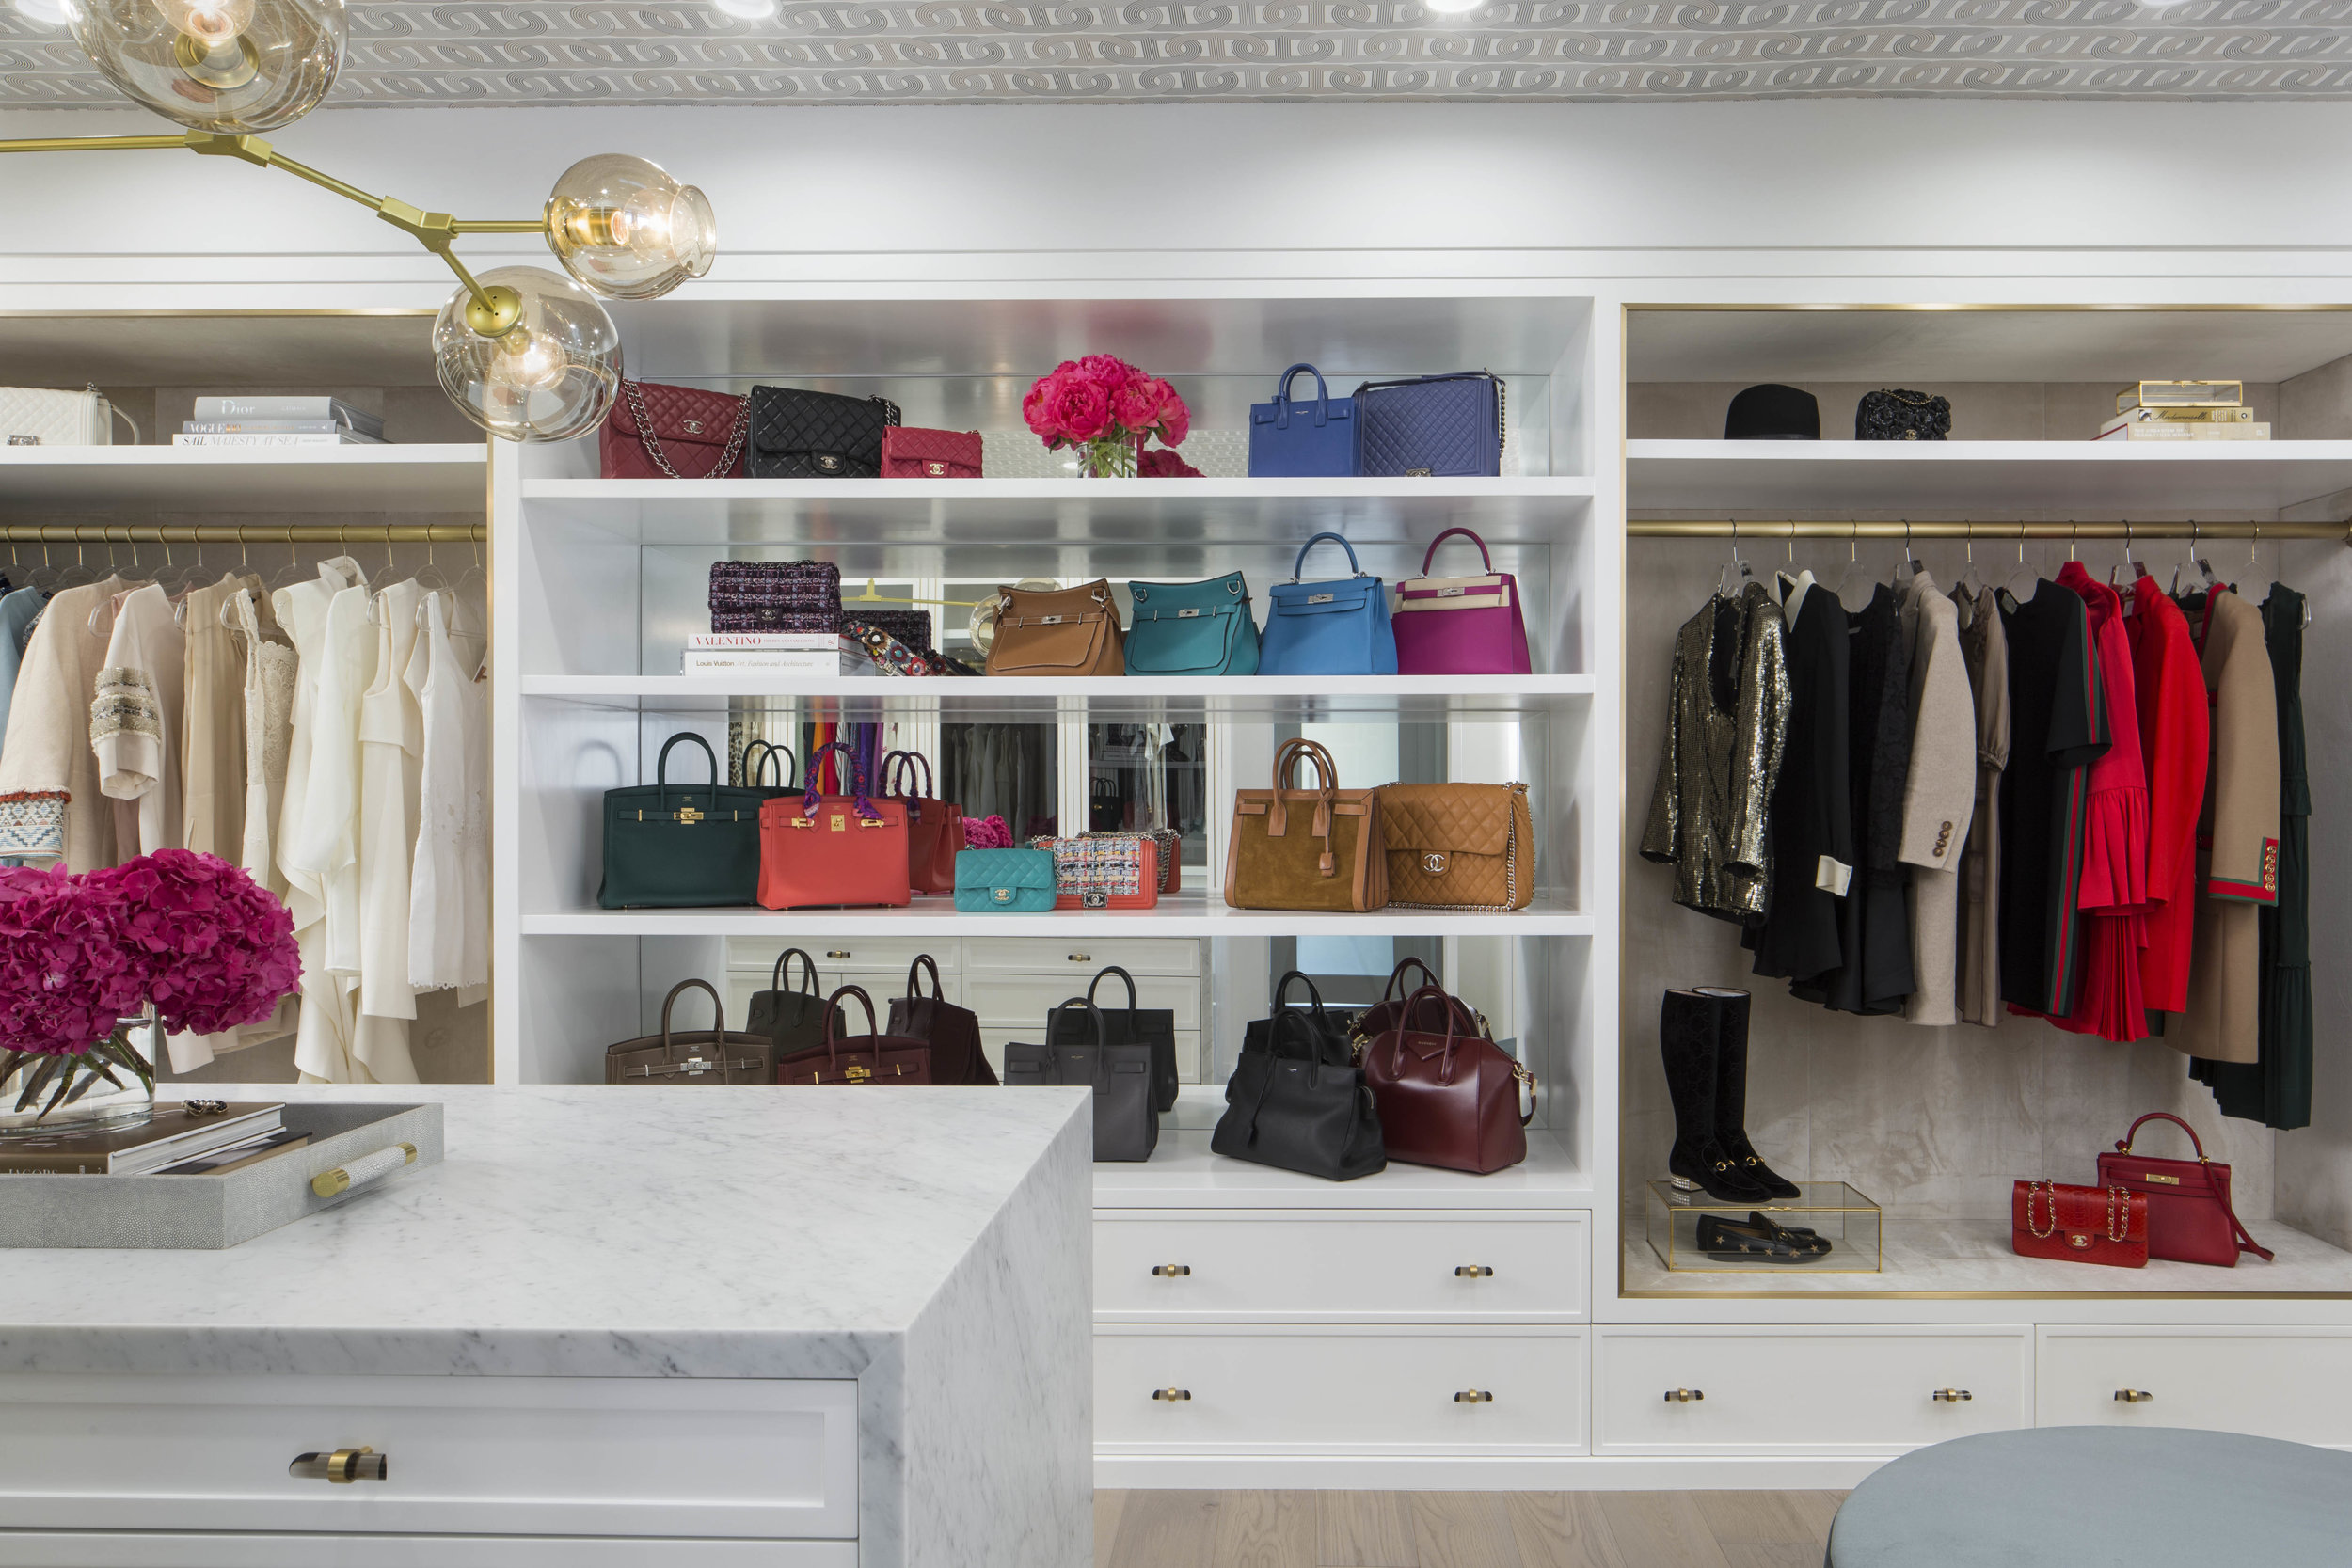 A MIRRORED HANDBAG DISPLAY IS THE CENTERPIECE FOR THE ROOM, FLANKED BY SUEDE-LINED STAGING AREAS WHERE THE CLIENT CAN ASSEMBLE LOOKS AND DISPLAY HER FAVORITE NEW PIECES!